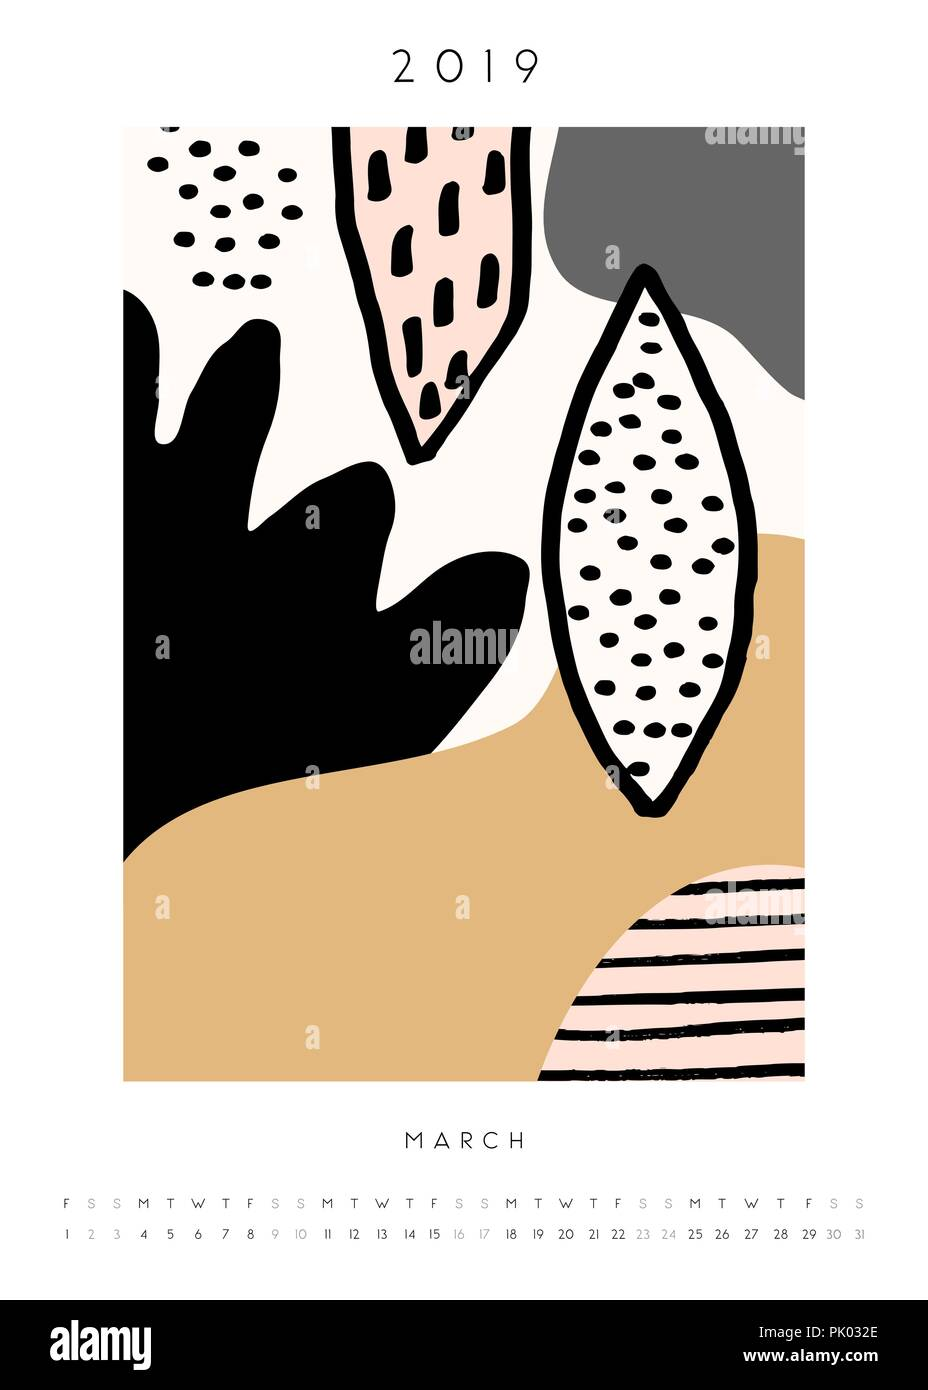 Printable A4 Size March 2019 Calendar Template Collage Style Design